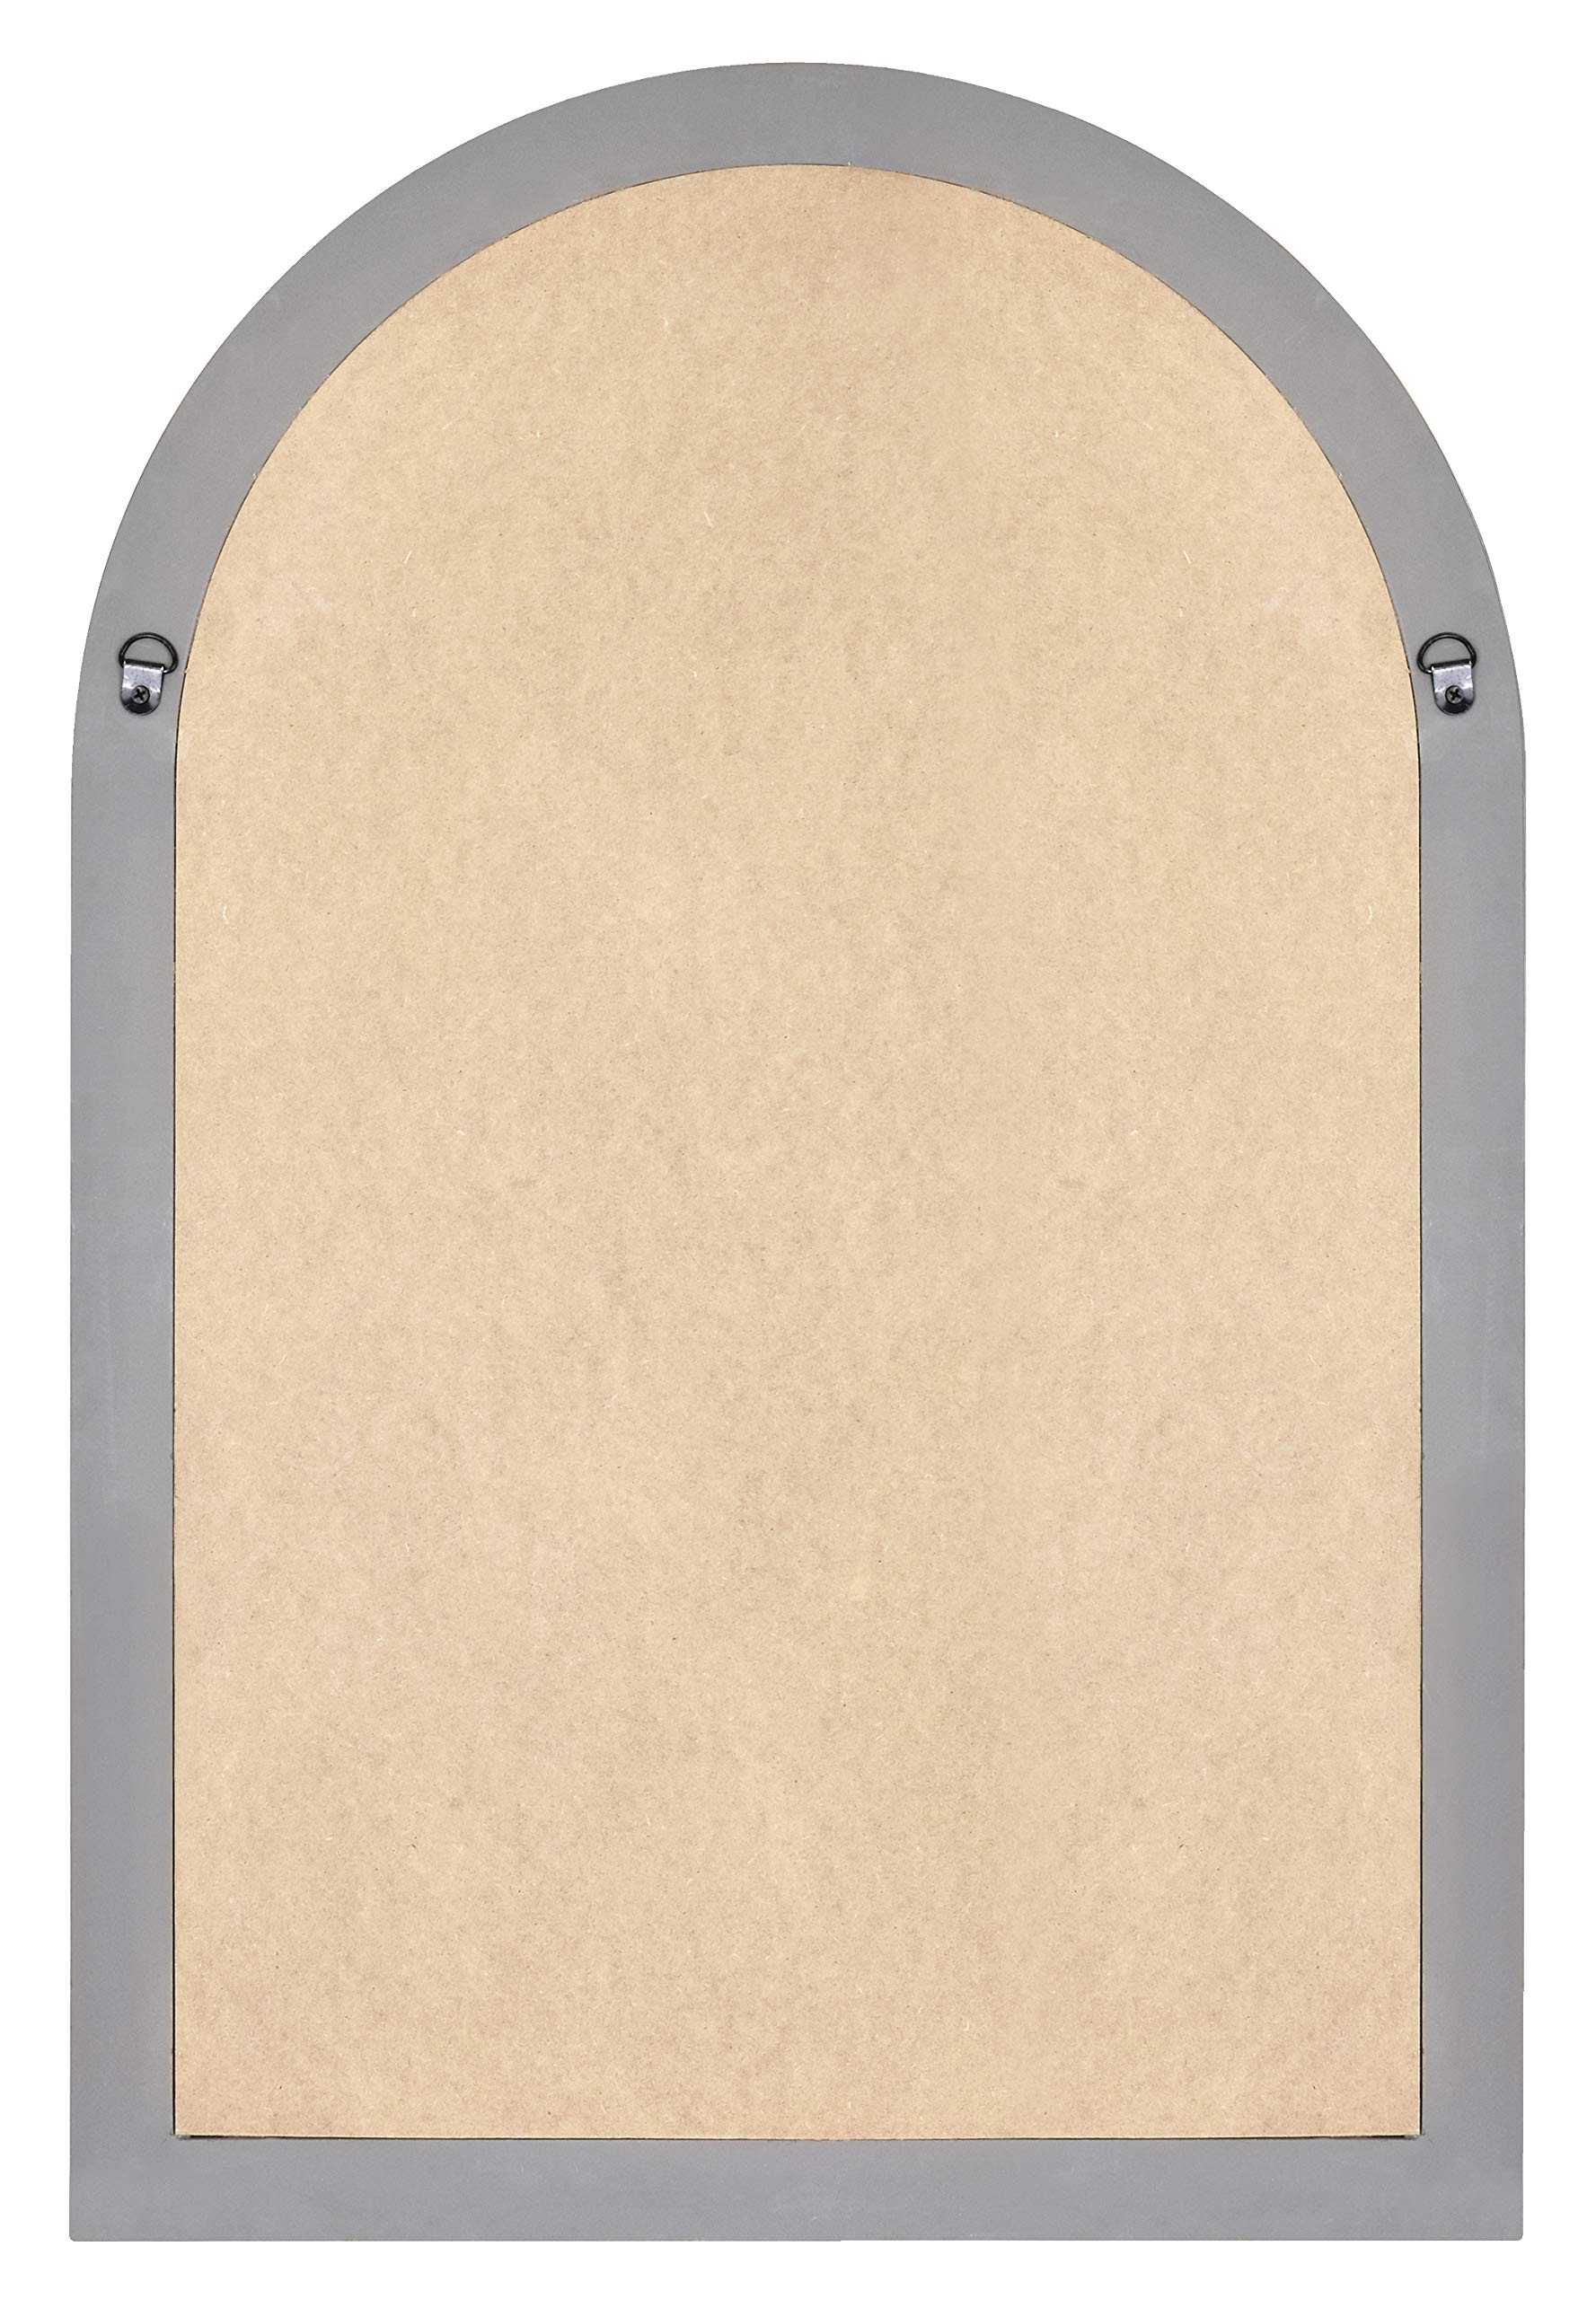 MCS 68874 Countryside Arched Windowpane Wall, Gray, 24x36 Inch Overall Size Mirror, by MCS (Image #4)